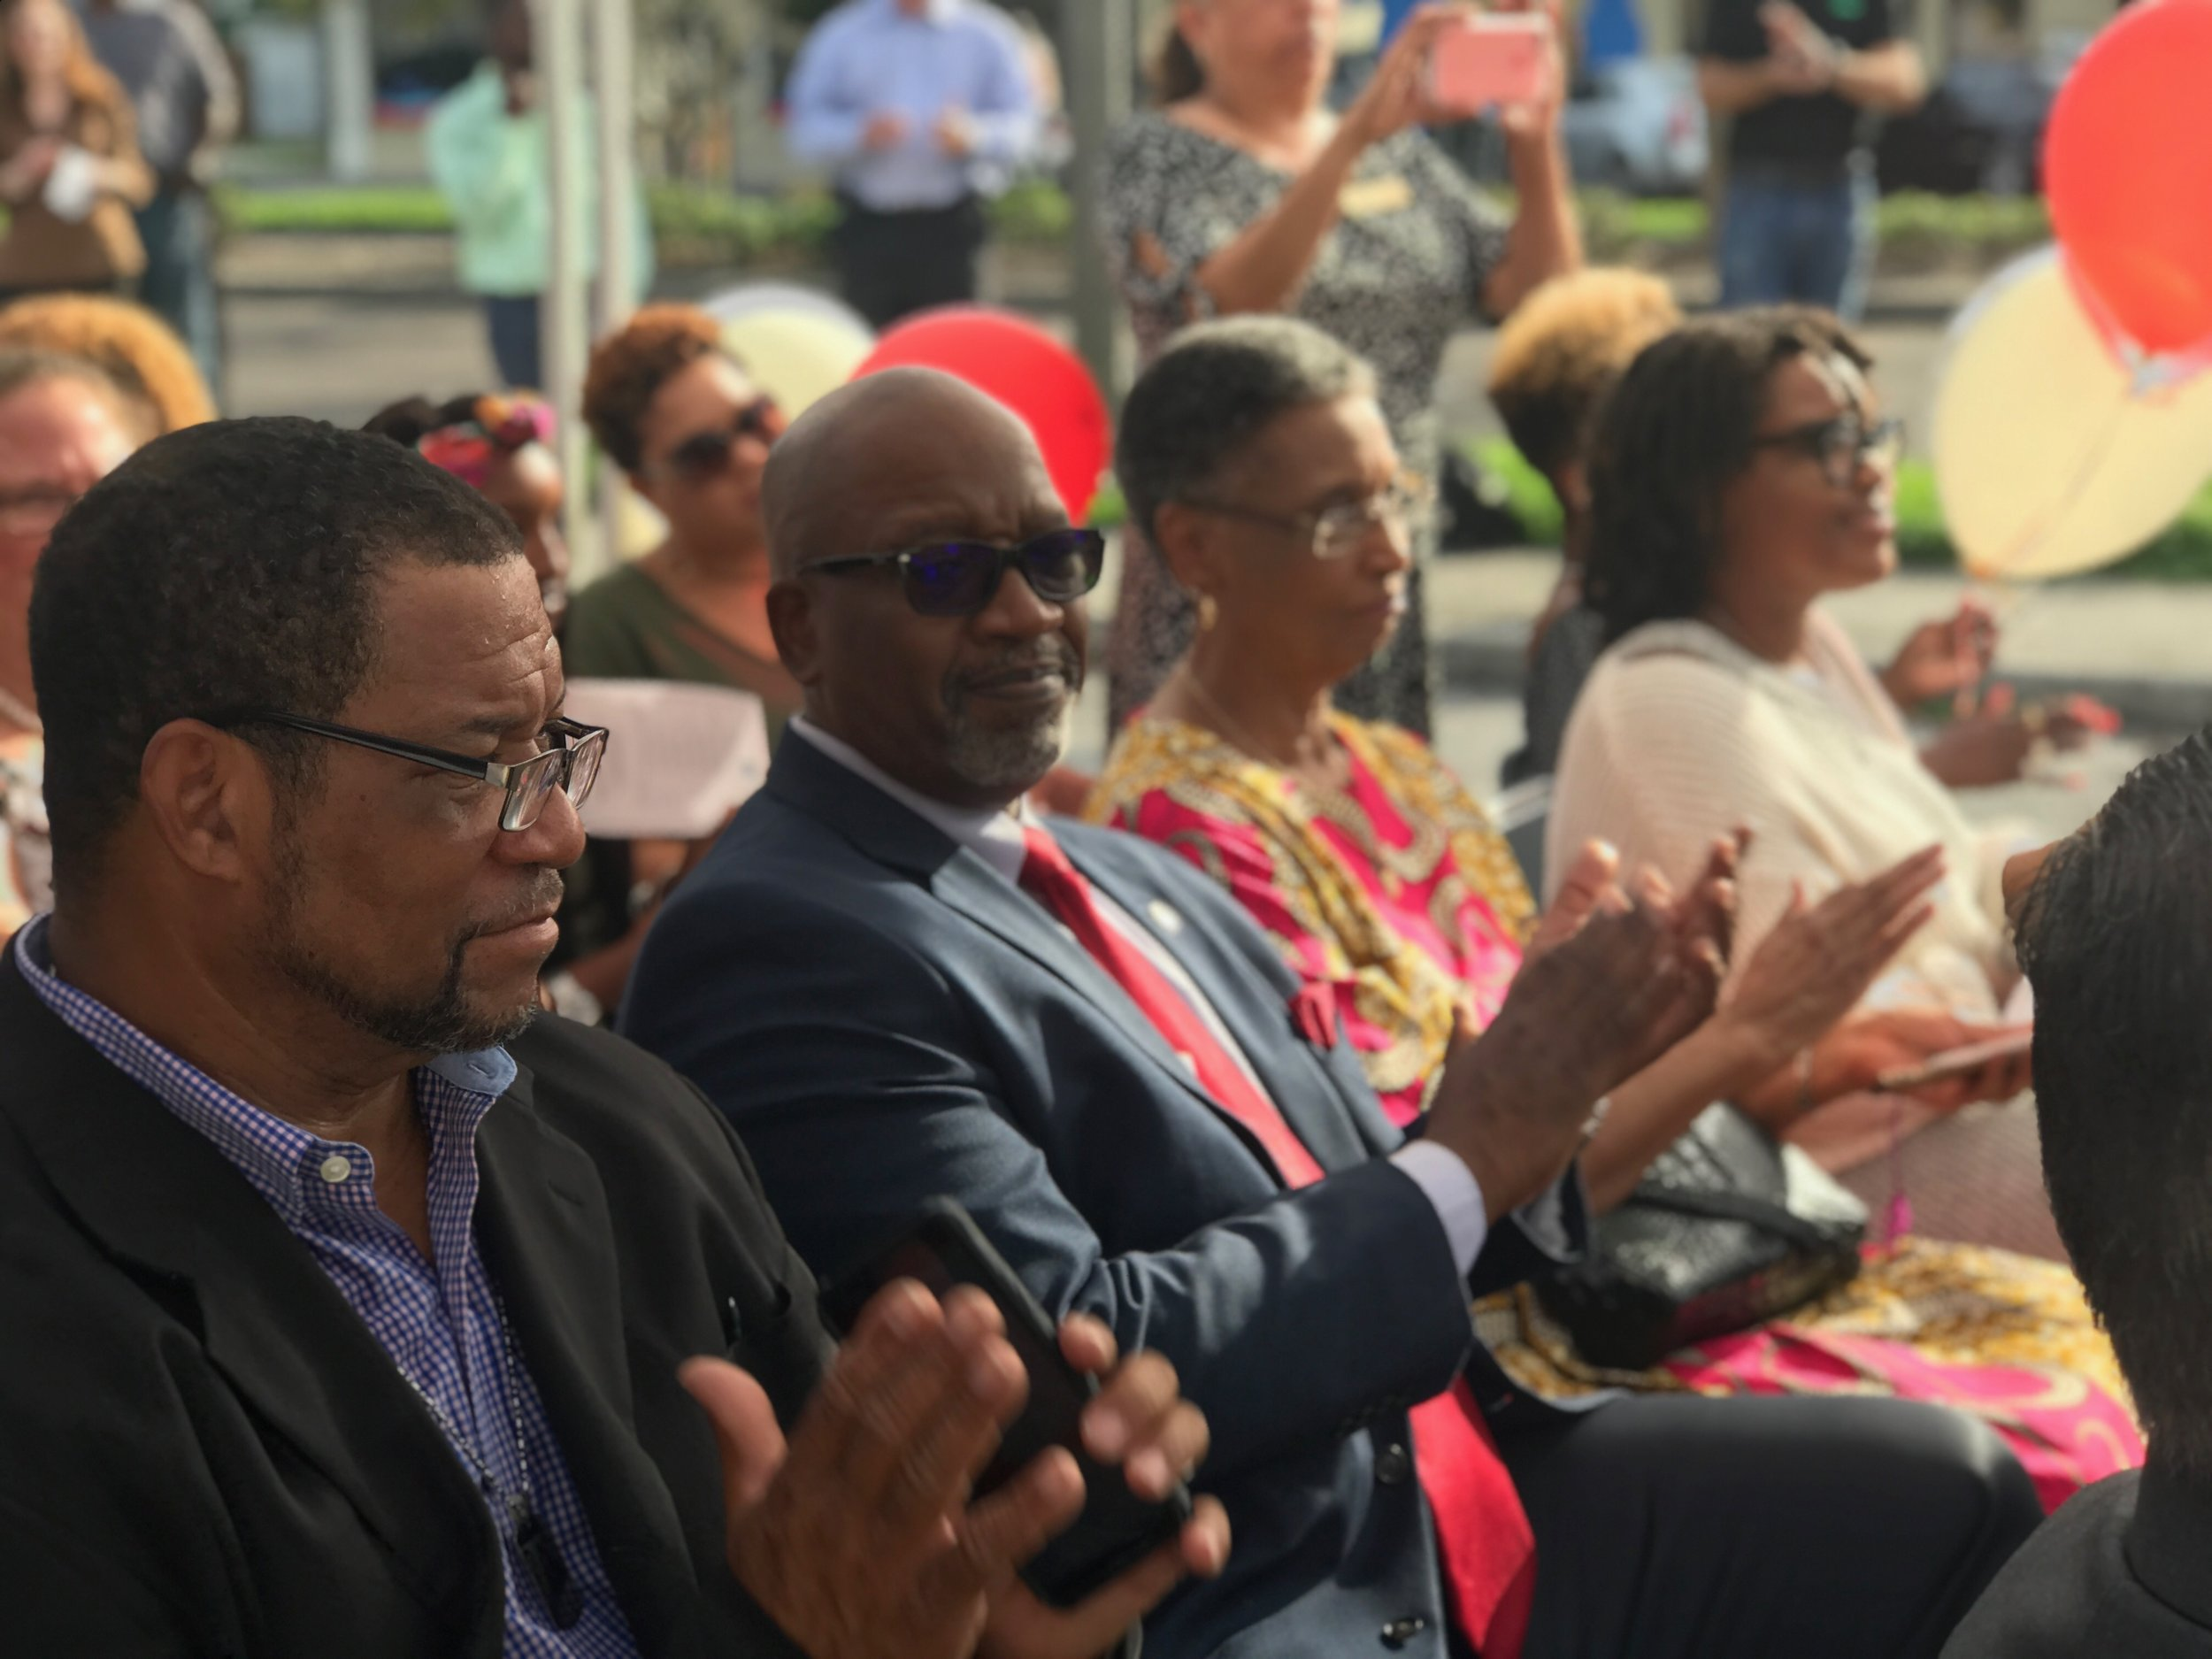 Rededication of Dr. David Welch Center  Held Oct 2, 2018 at the Dr. David Welch building St. Petersburg. This event was hosted by PERC